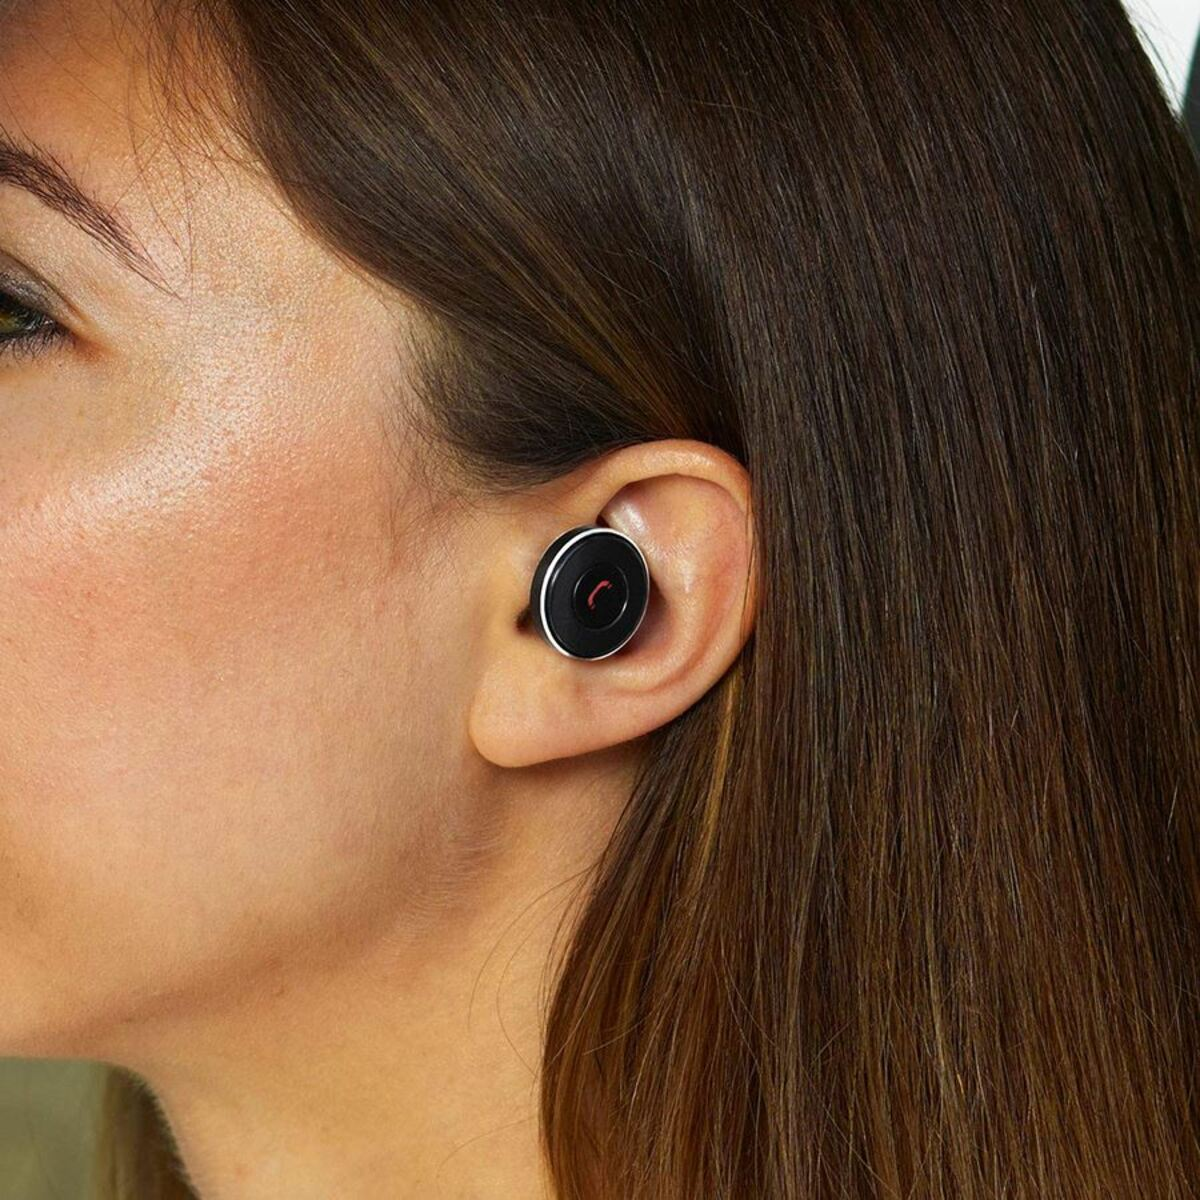 Bild 3 von Cartrend Bluetooth In-Ear-Headset